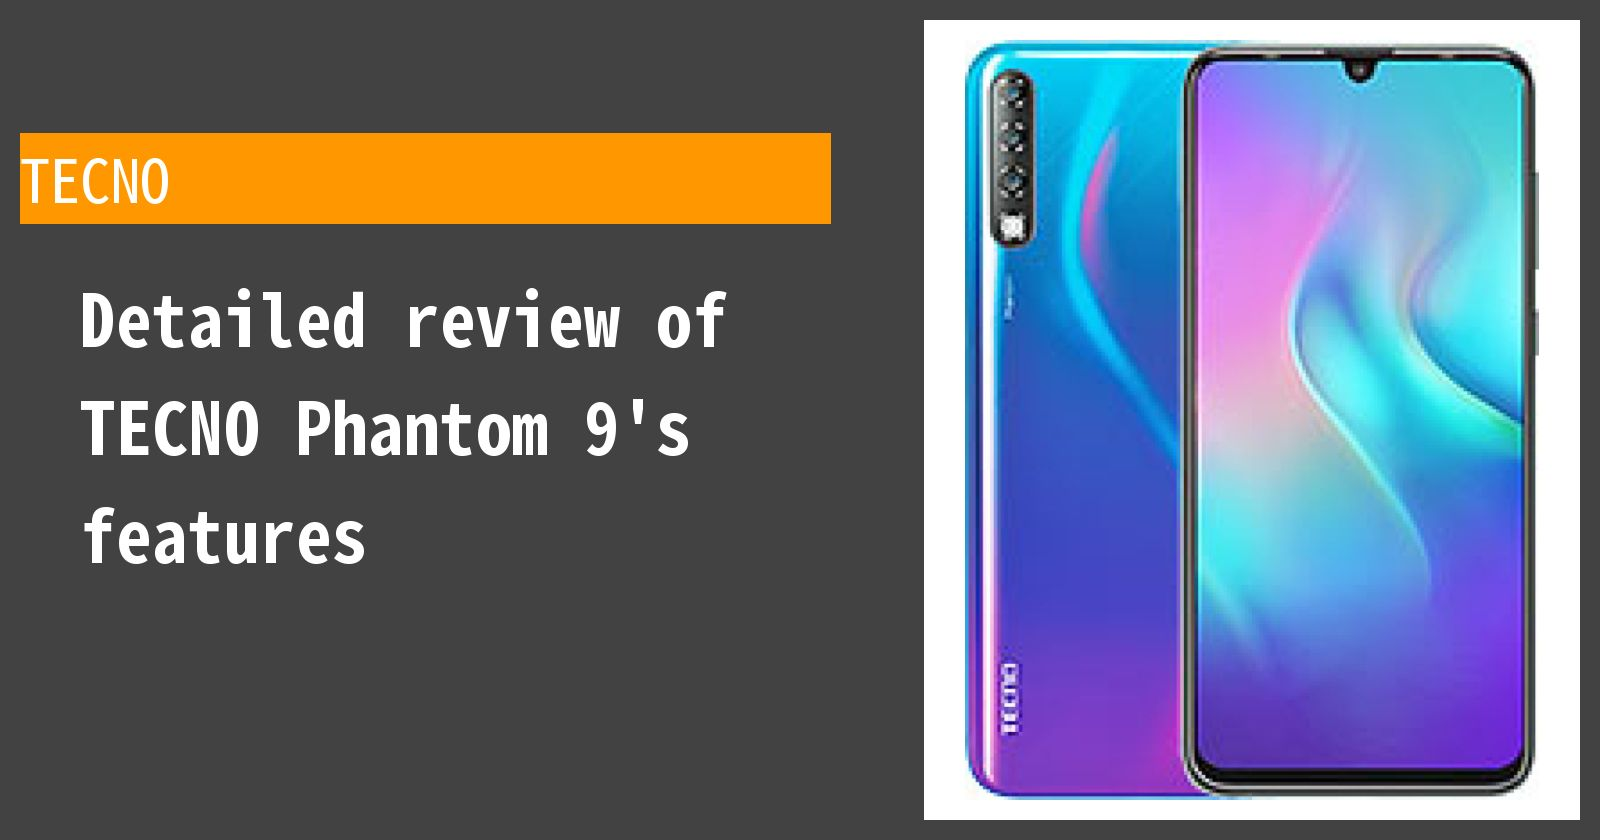 Detailed review of TECNO Phantom 9's features